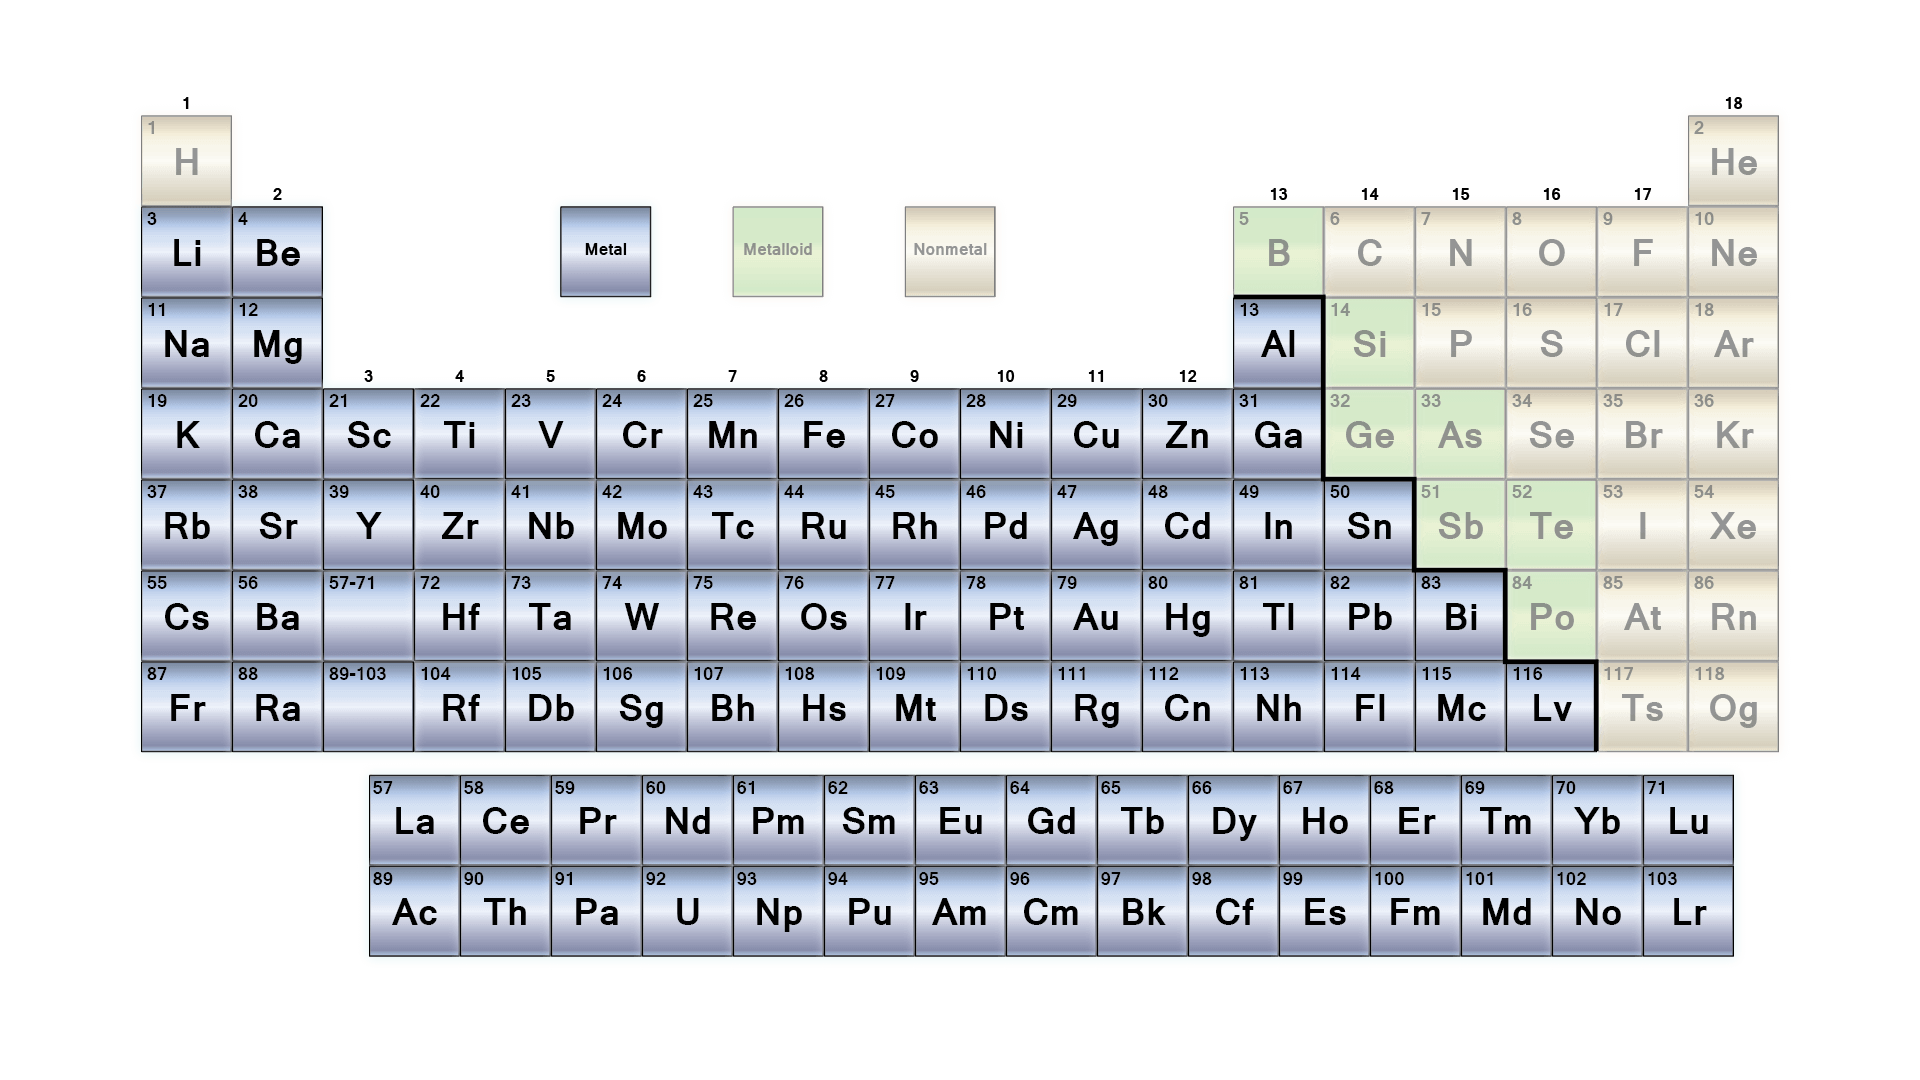 4 Major Groups Of The Periodic Table